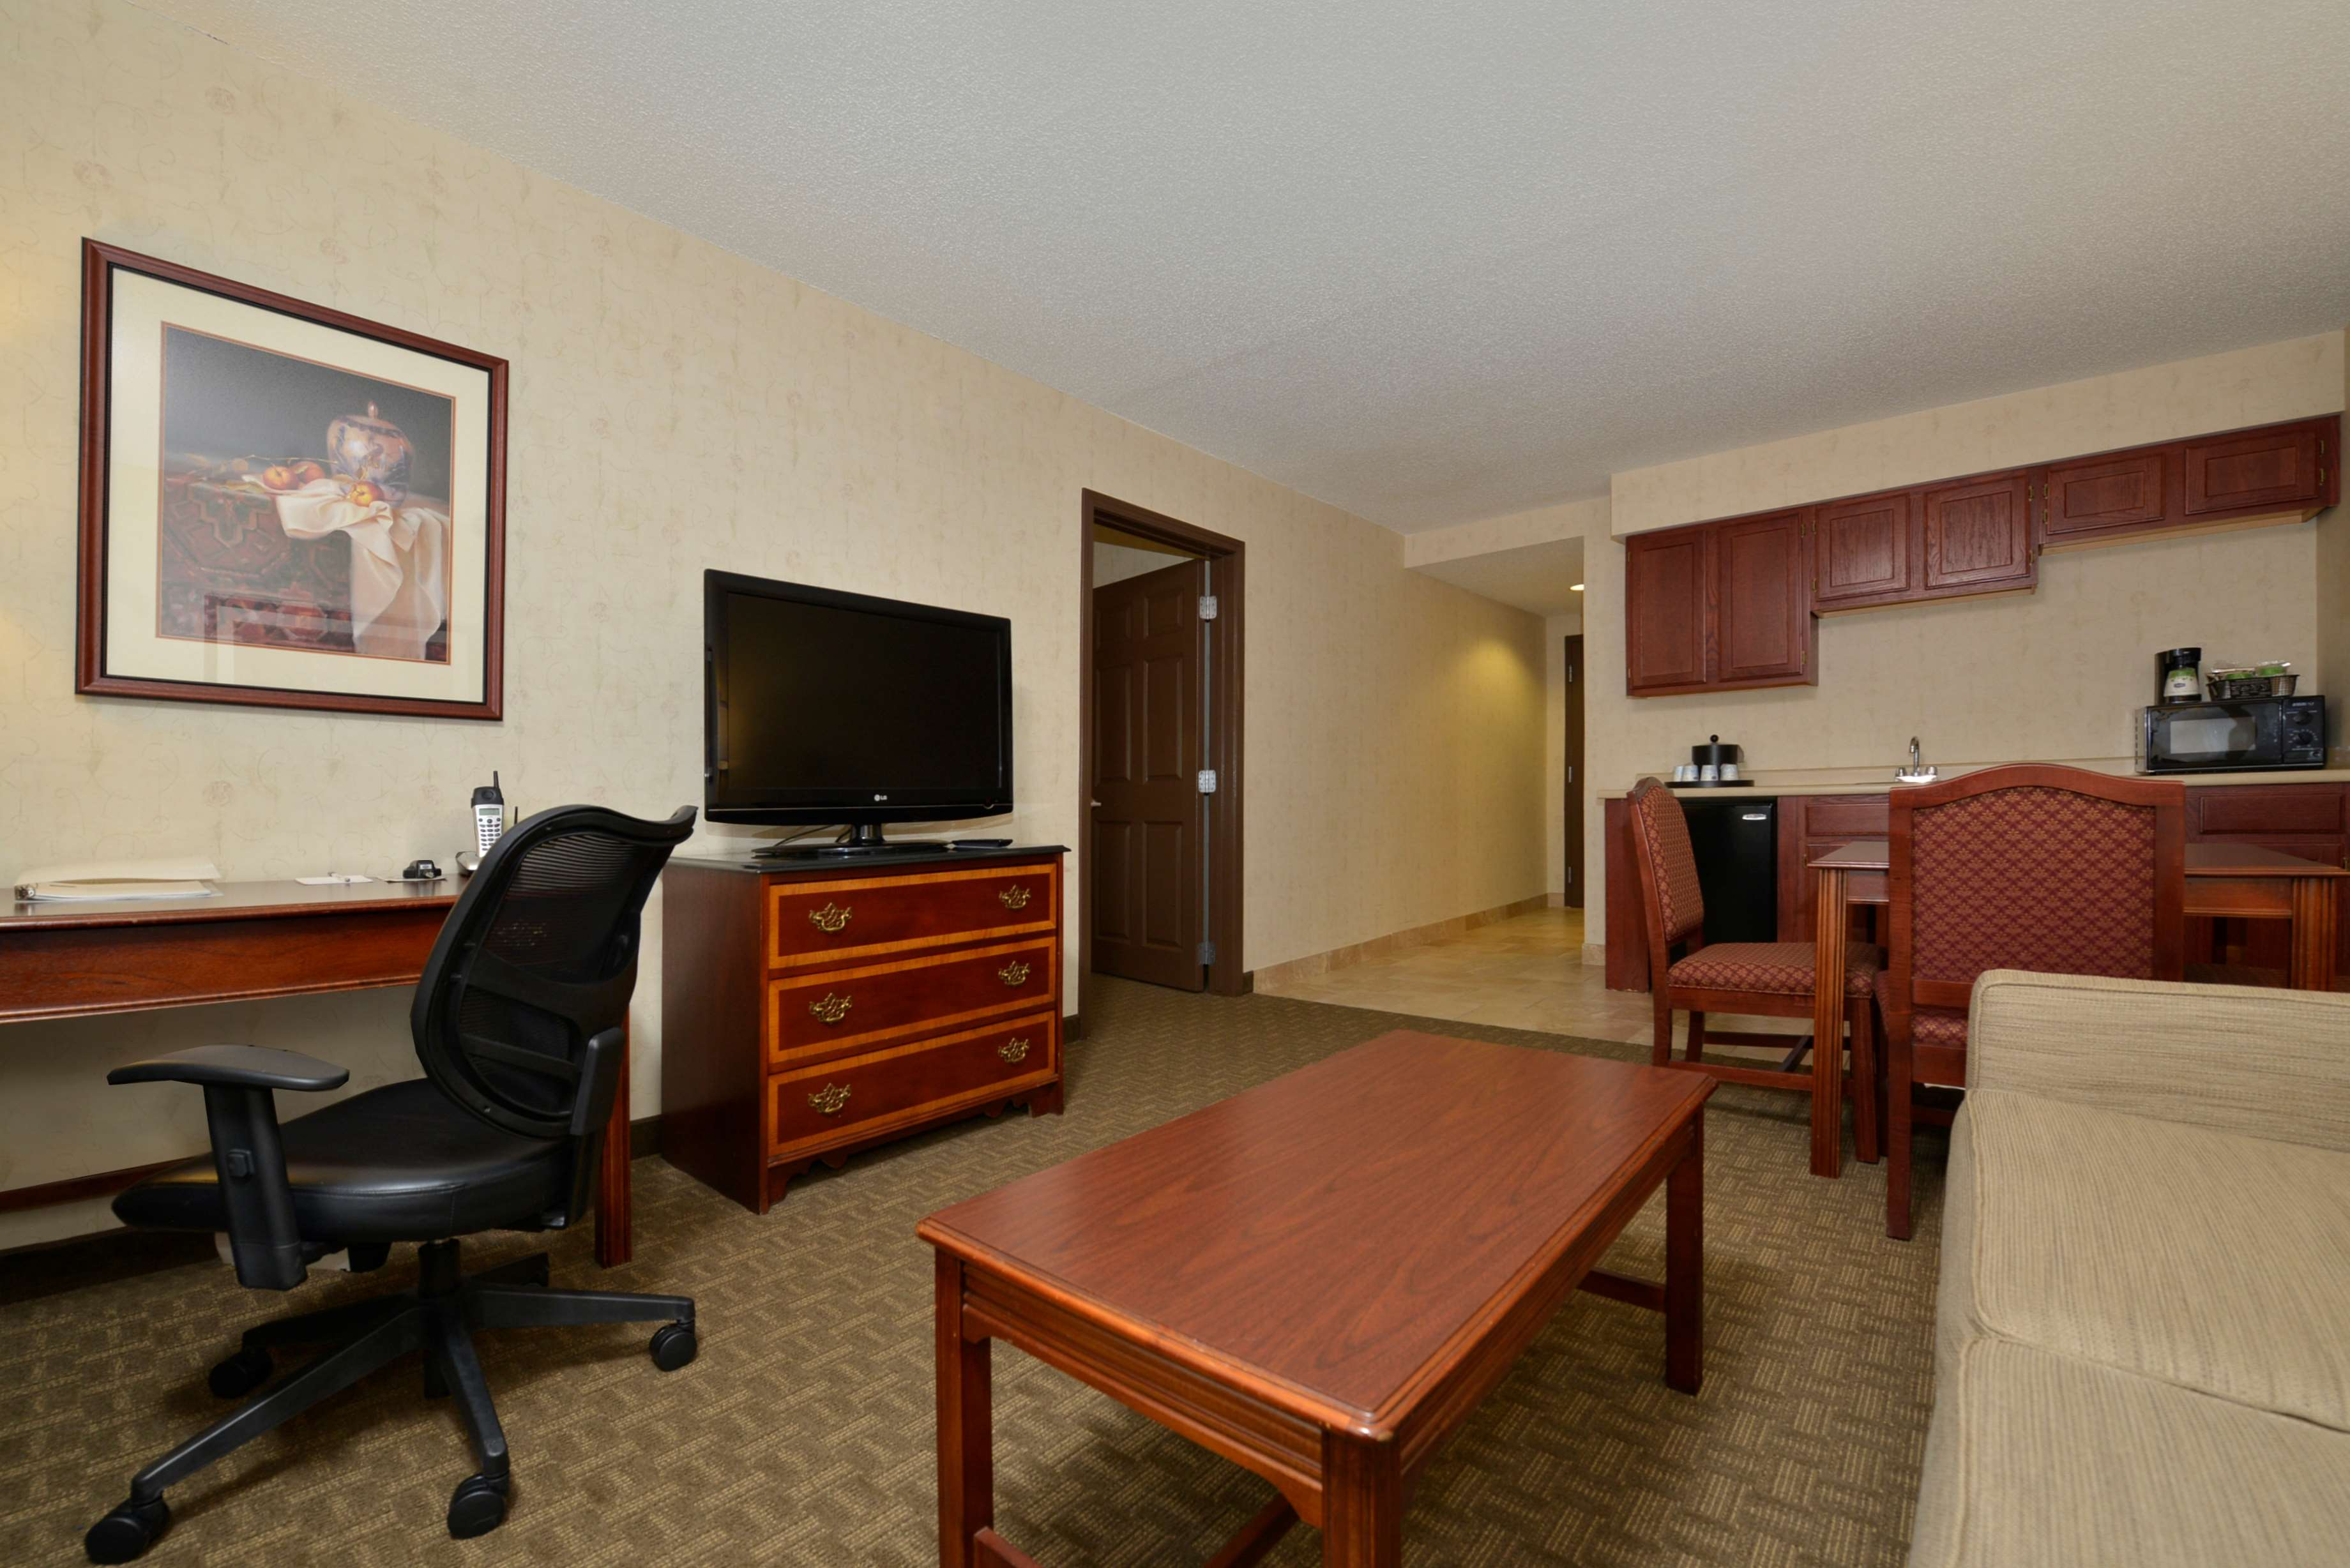 Hampton Inn East Aurora image 26